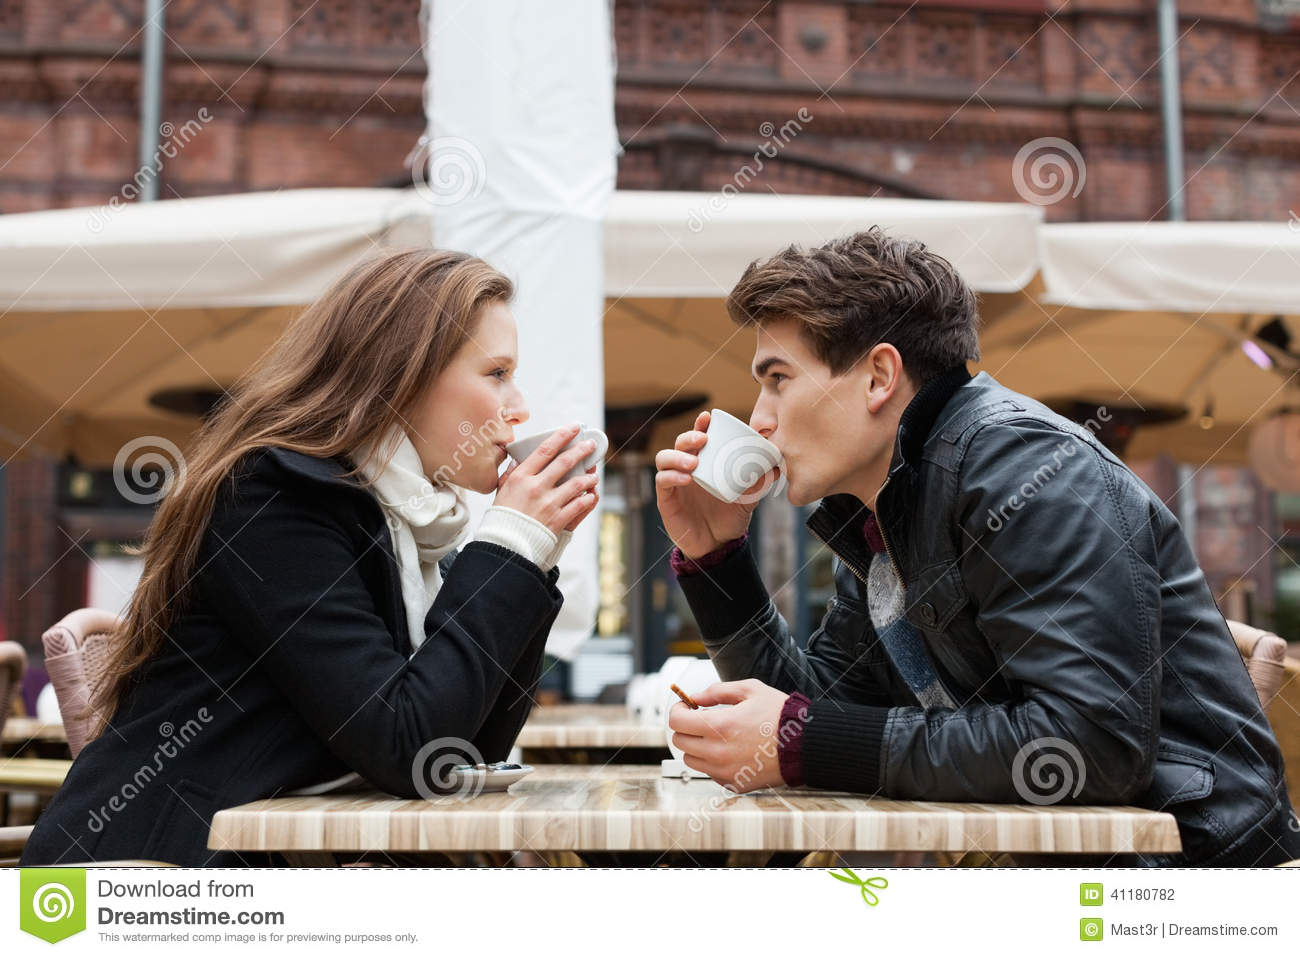 Couple Drinking Coffee Outdoor Restaurant Stock Photo